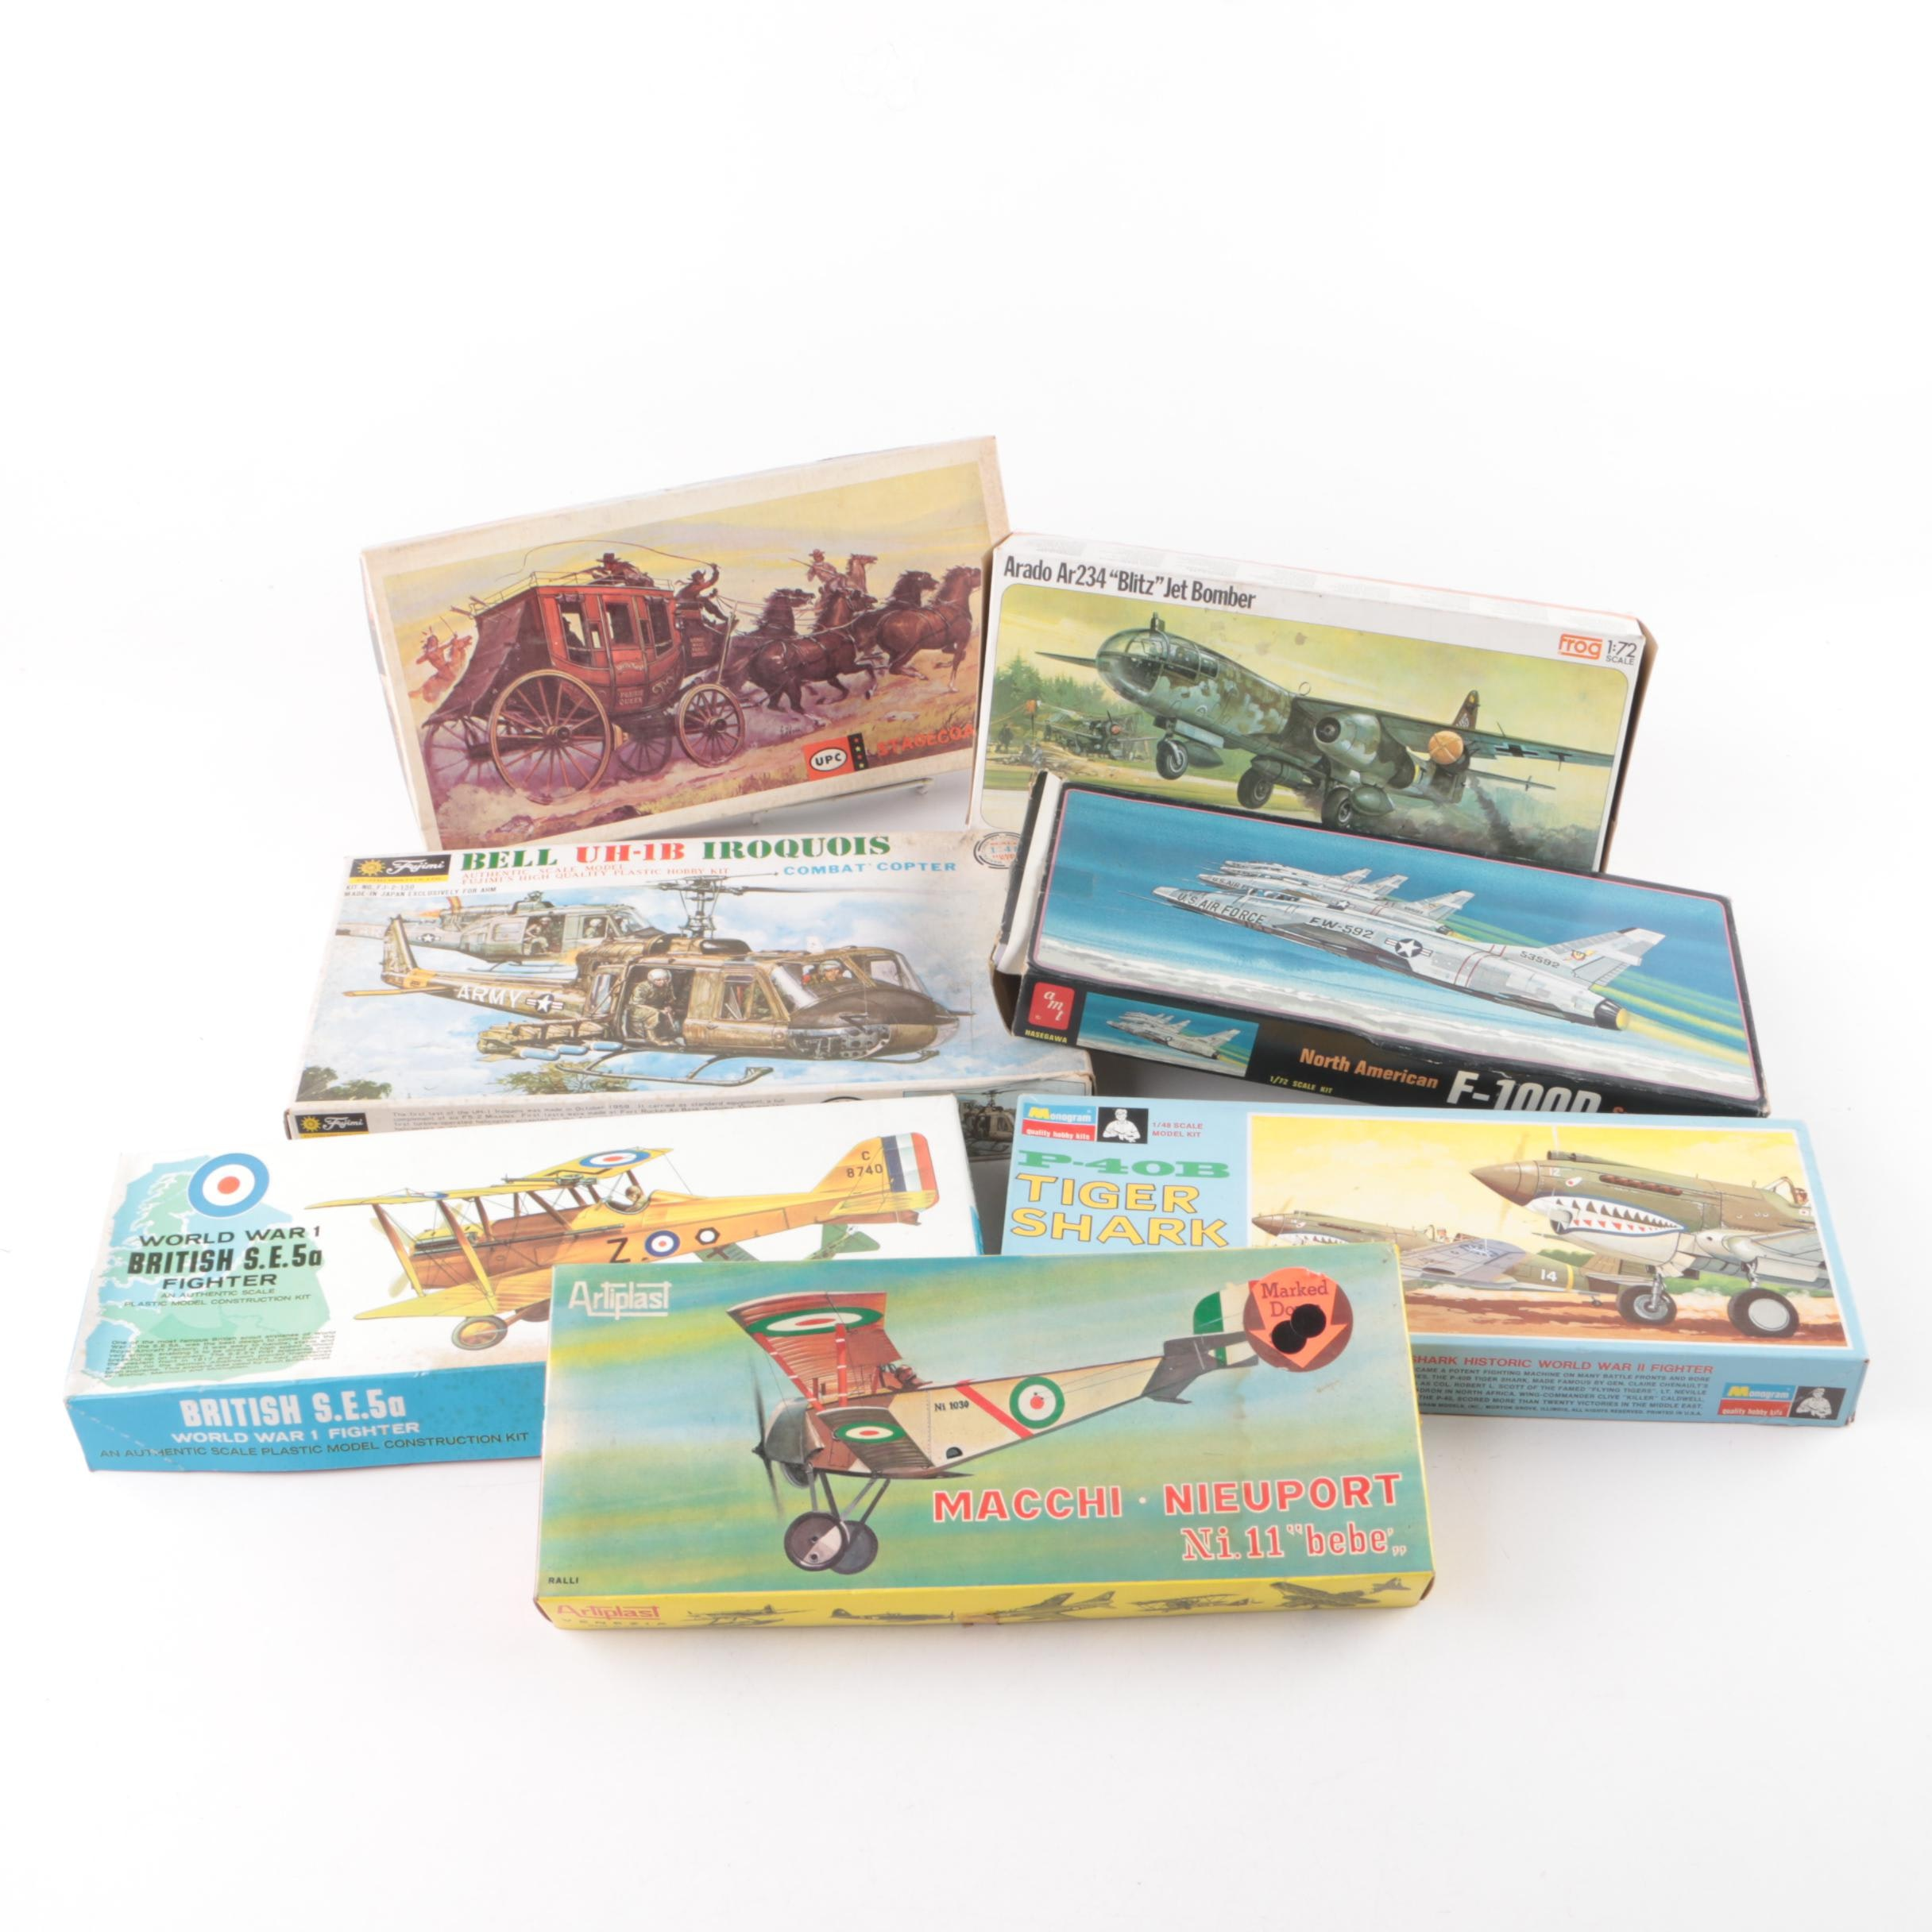 Vintage Military Aircraft and Stagecoach Model Kits